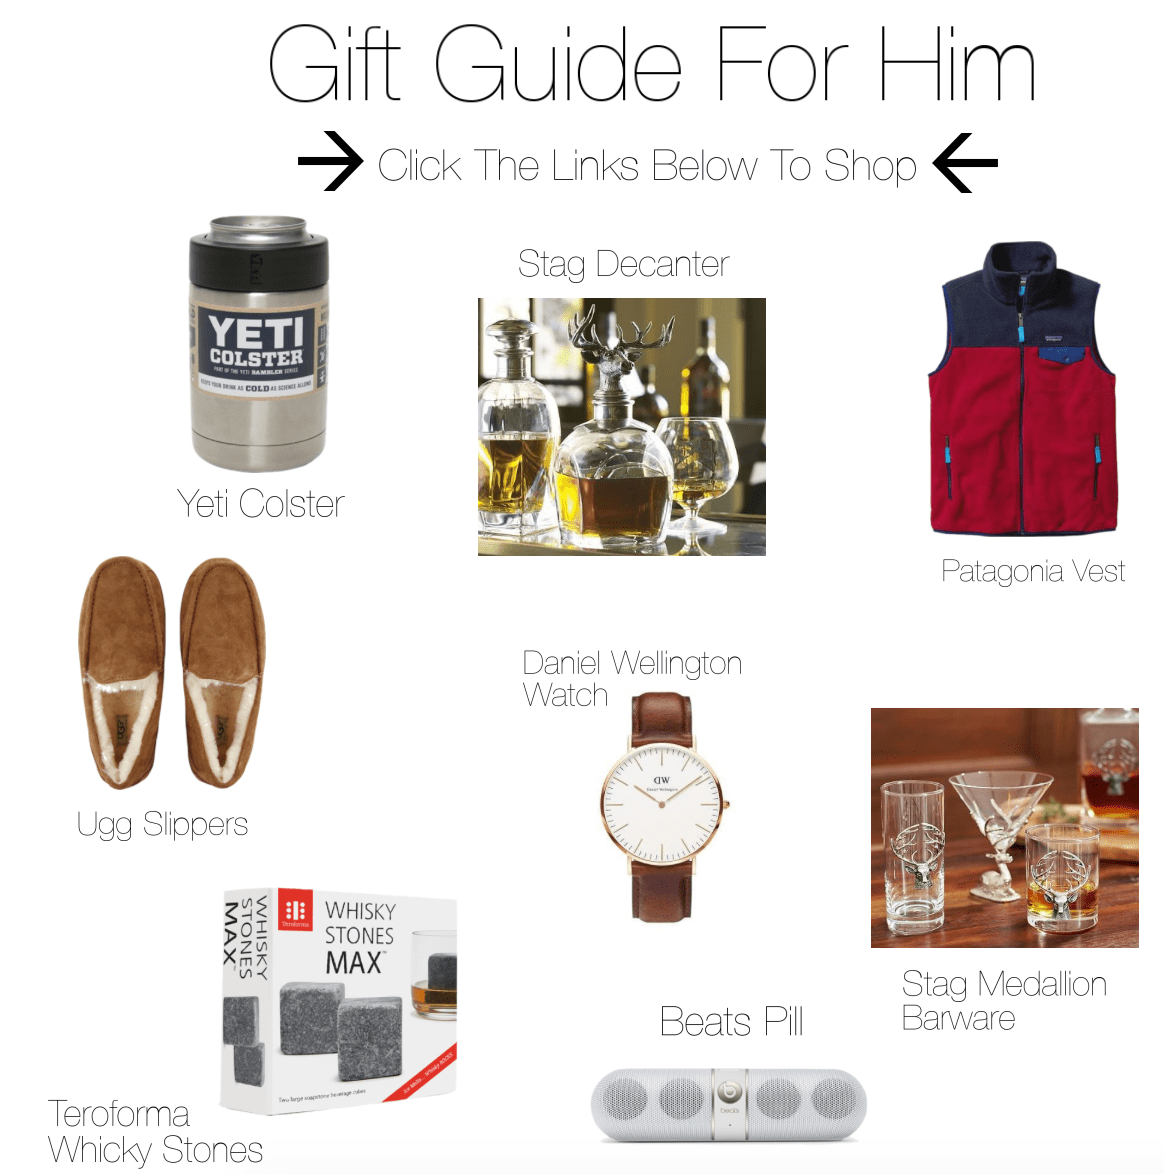 to and from gift guide